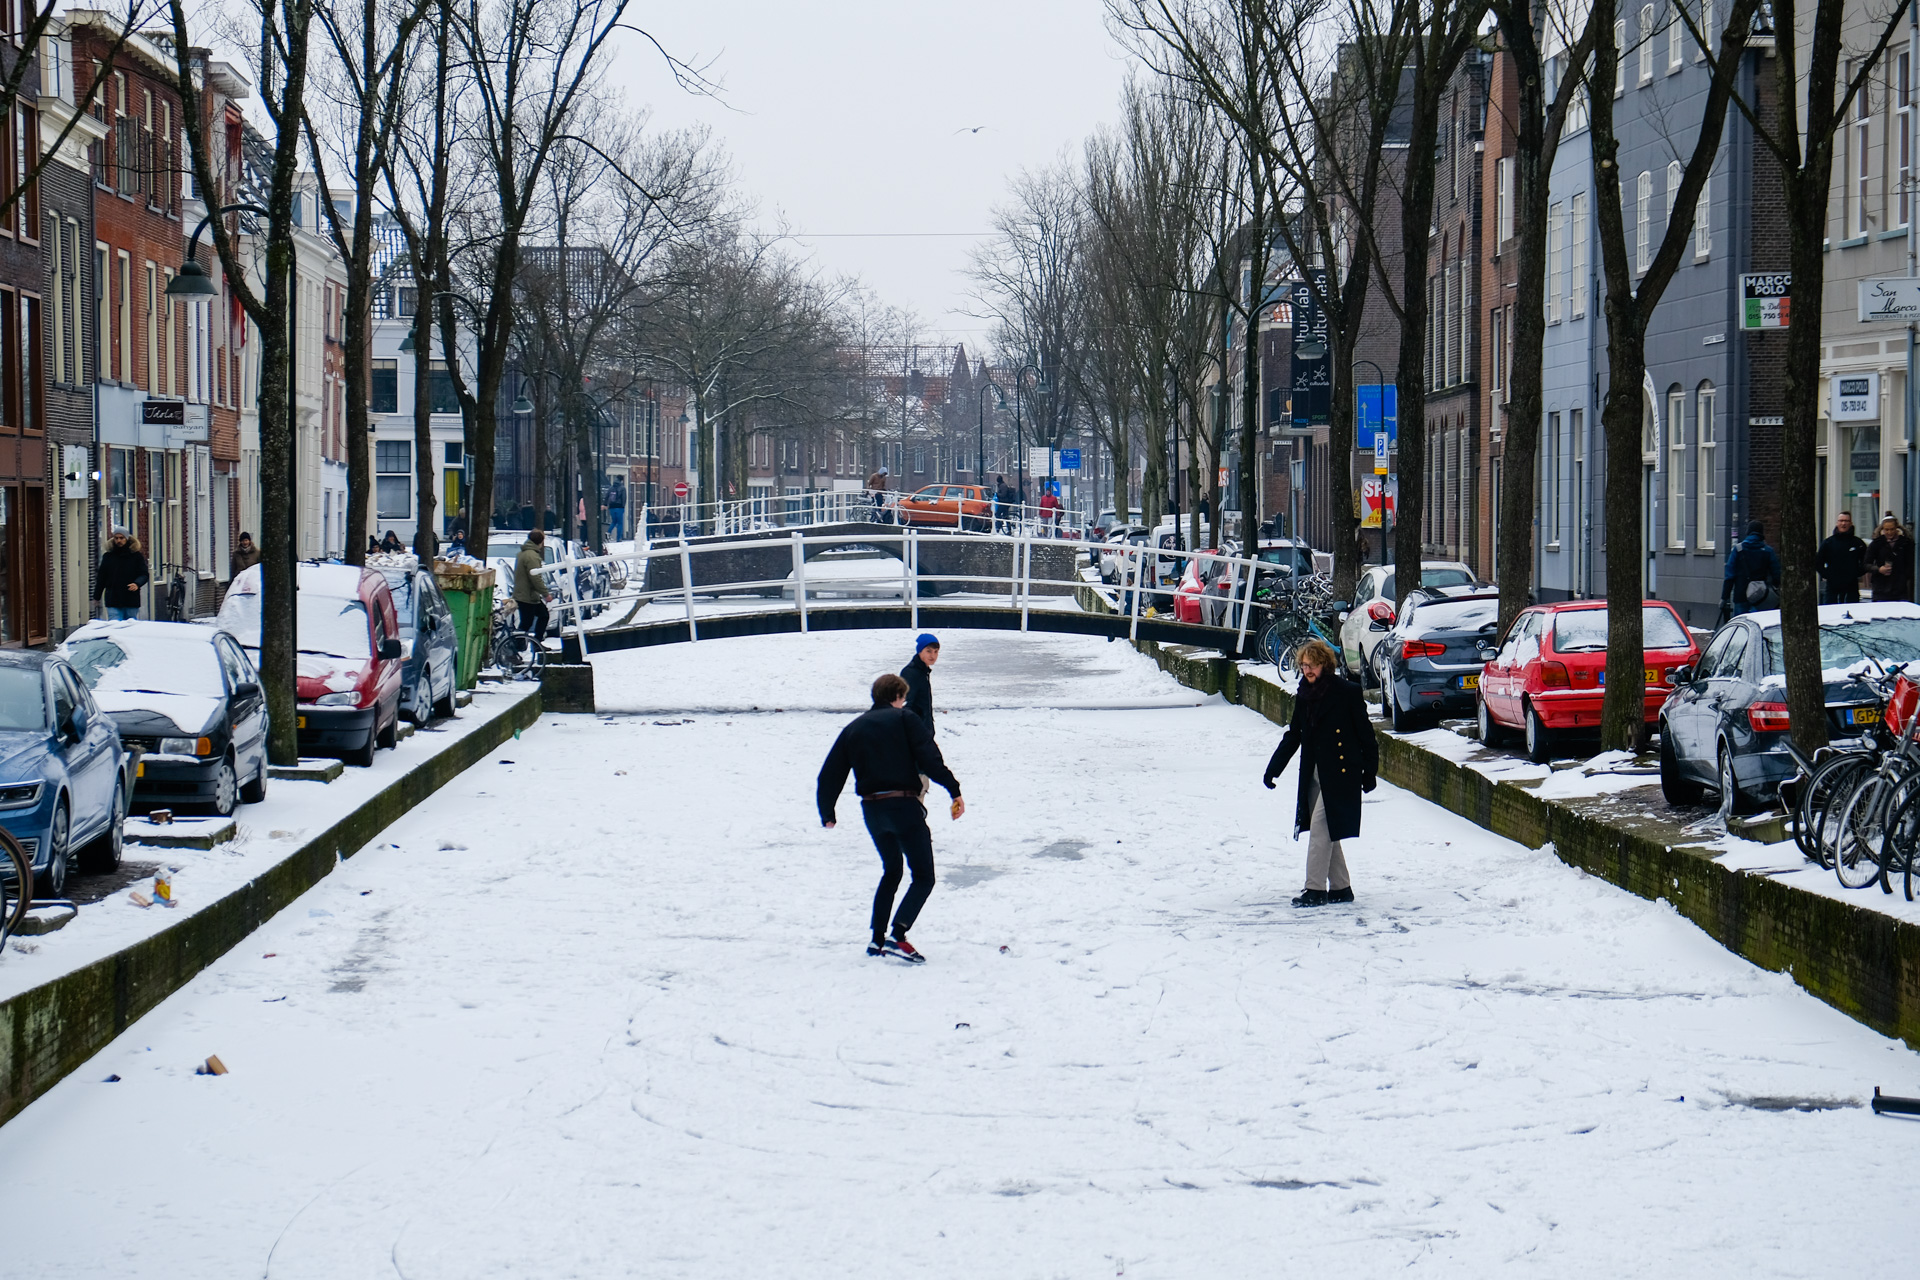 Some guys are playing and walking on the frozen canal